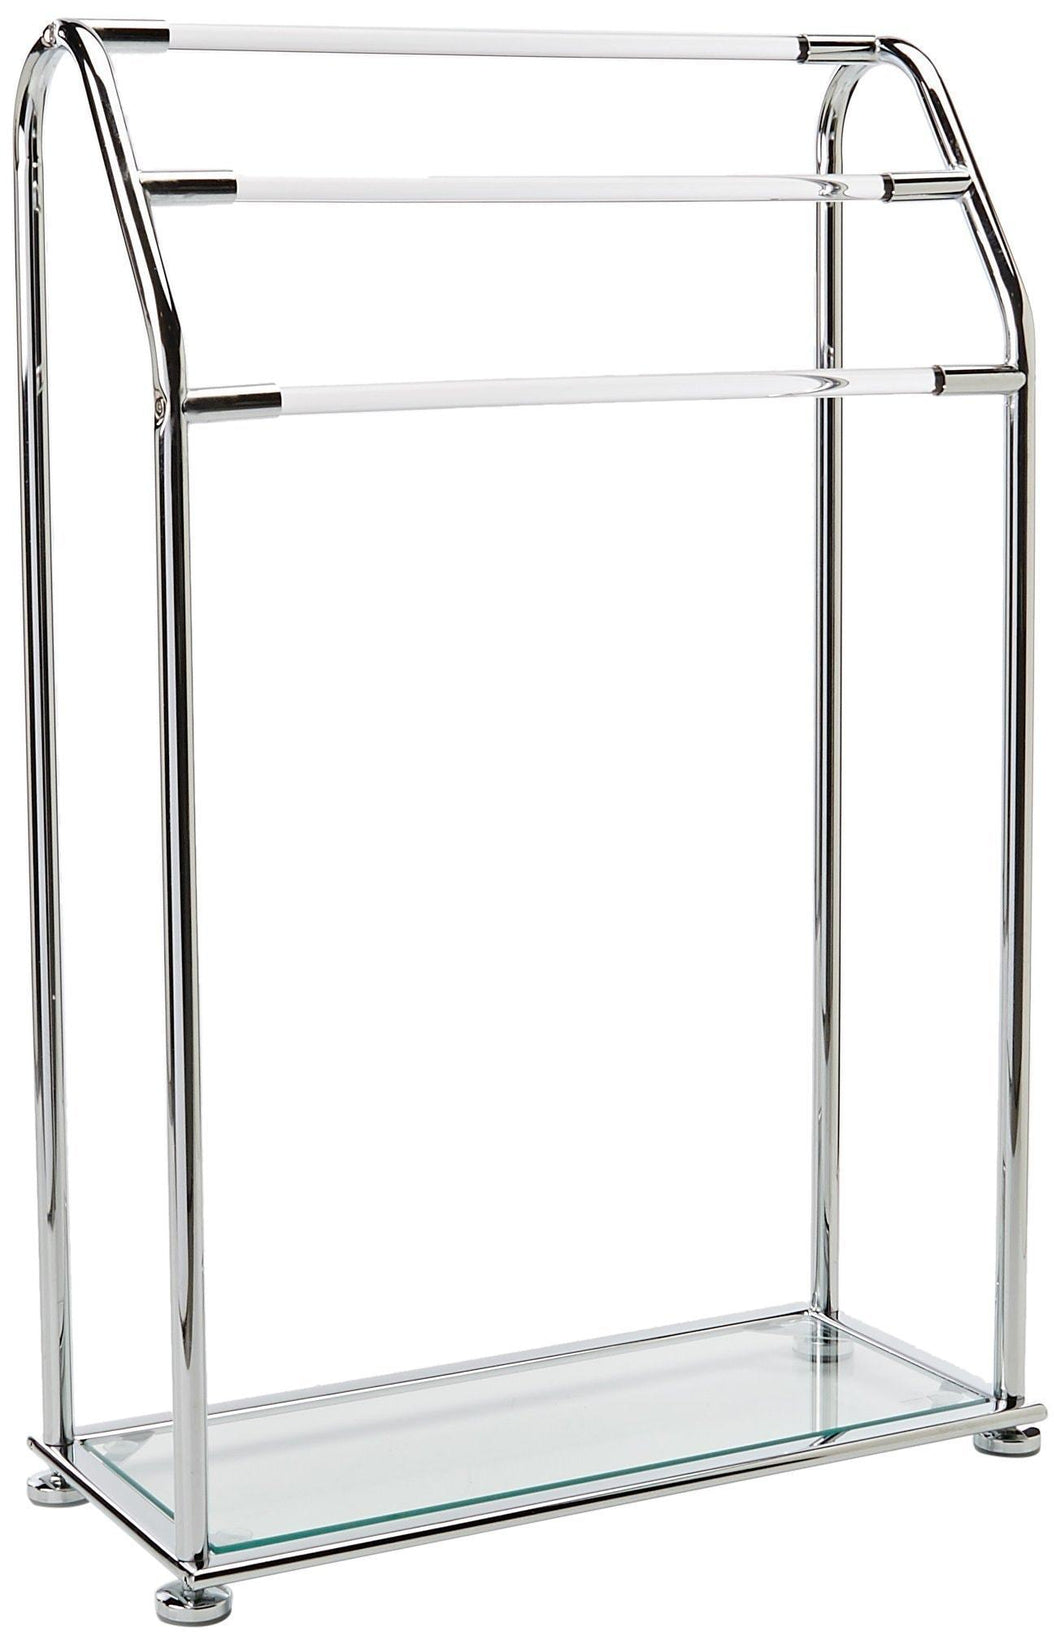 Featured organize it all 3 bar bathroom towel drying rack holder with shelf chrome